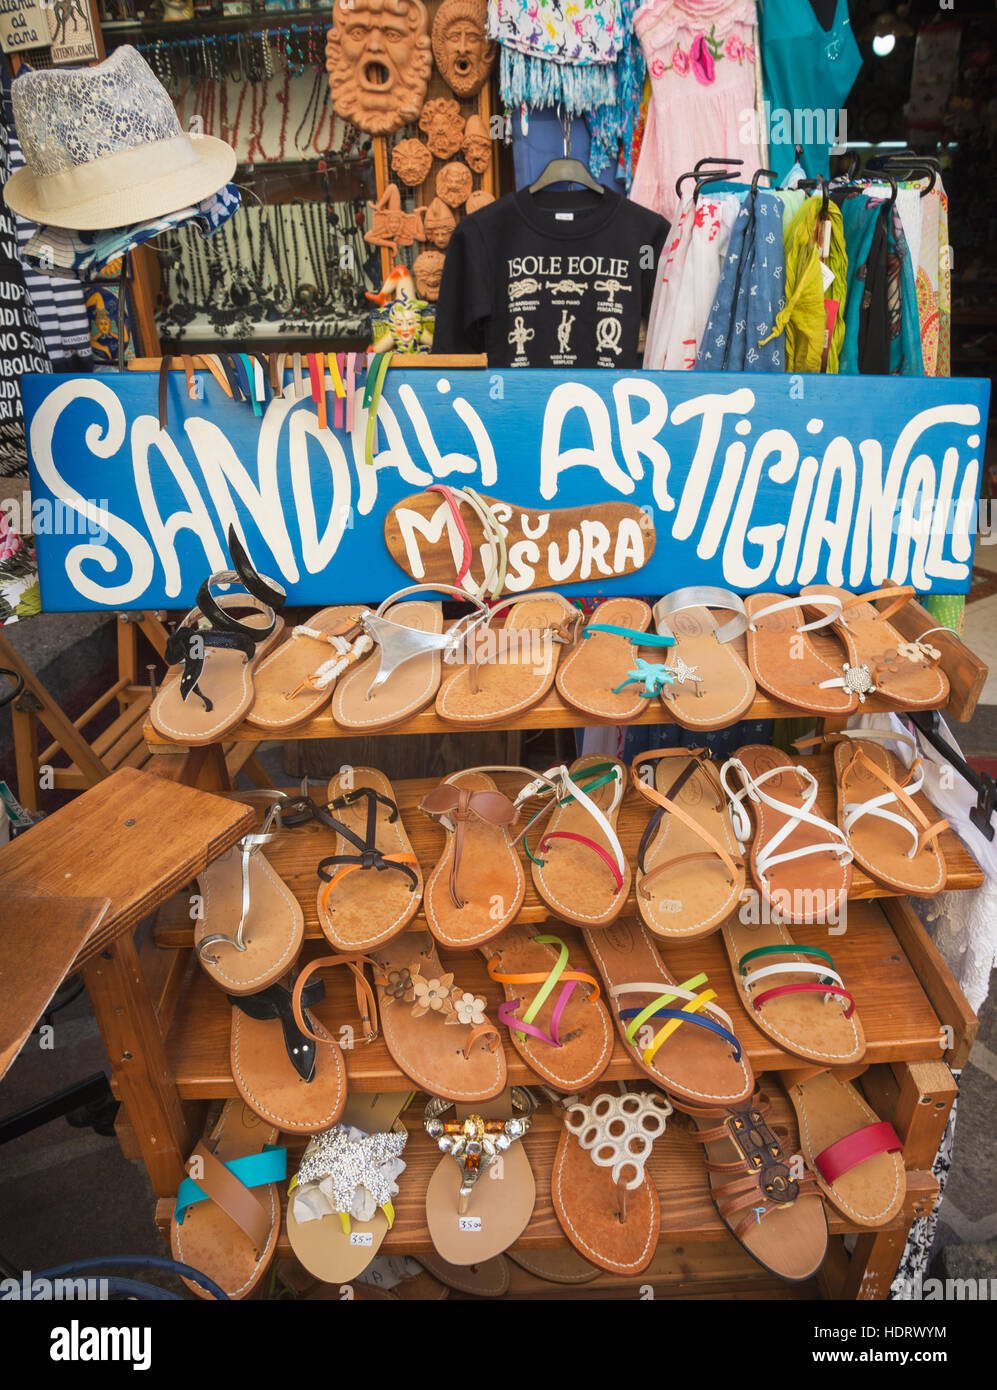 Hand made sandals, Lipari Town, Lipari Island, Aeolian Islands, UNESCO World Heritage Site, Sicily, Italy, Mediterranean, - Stock Image